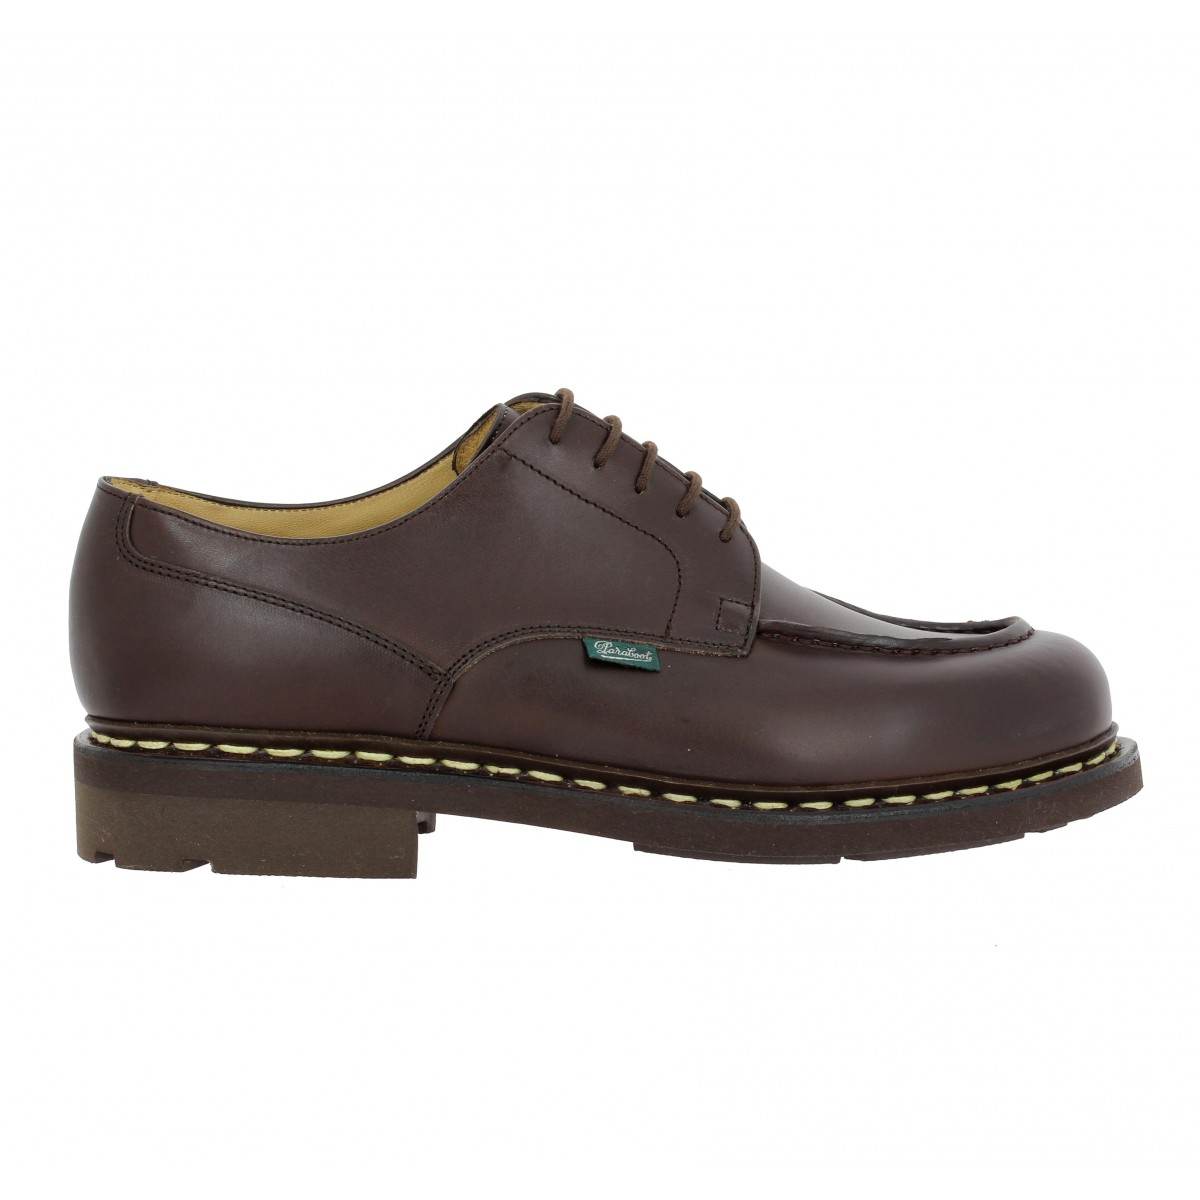 c63b91497 PARABOOT Chambord cuir Homme Cafe